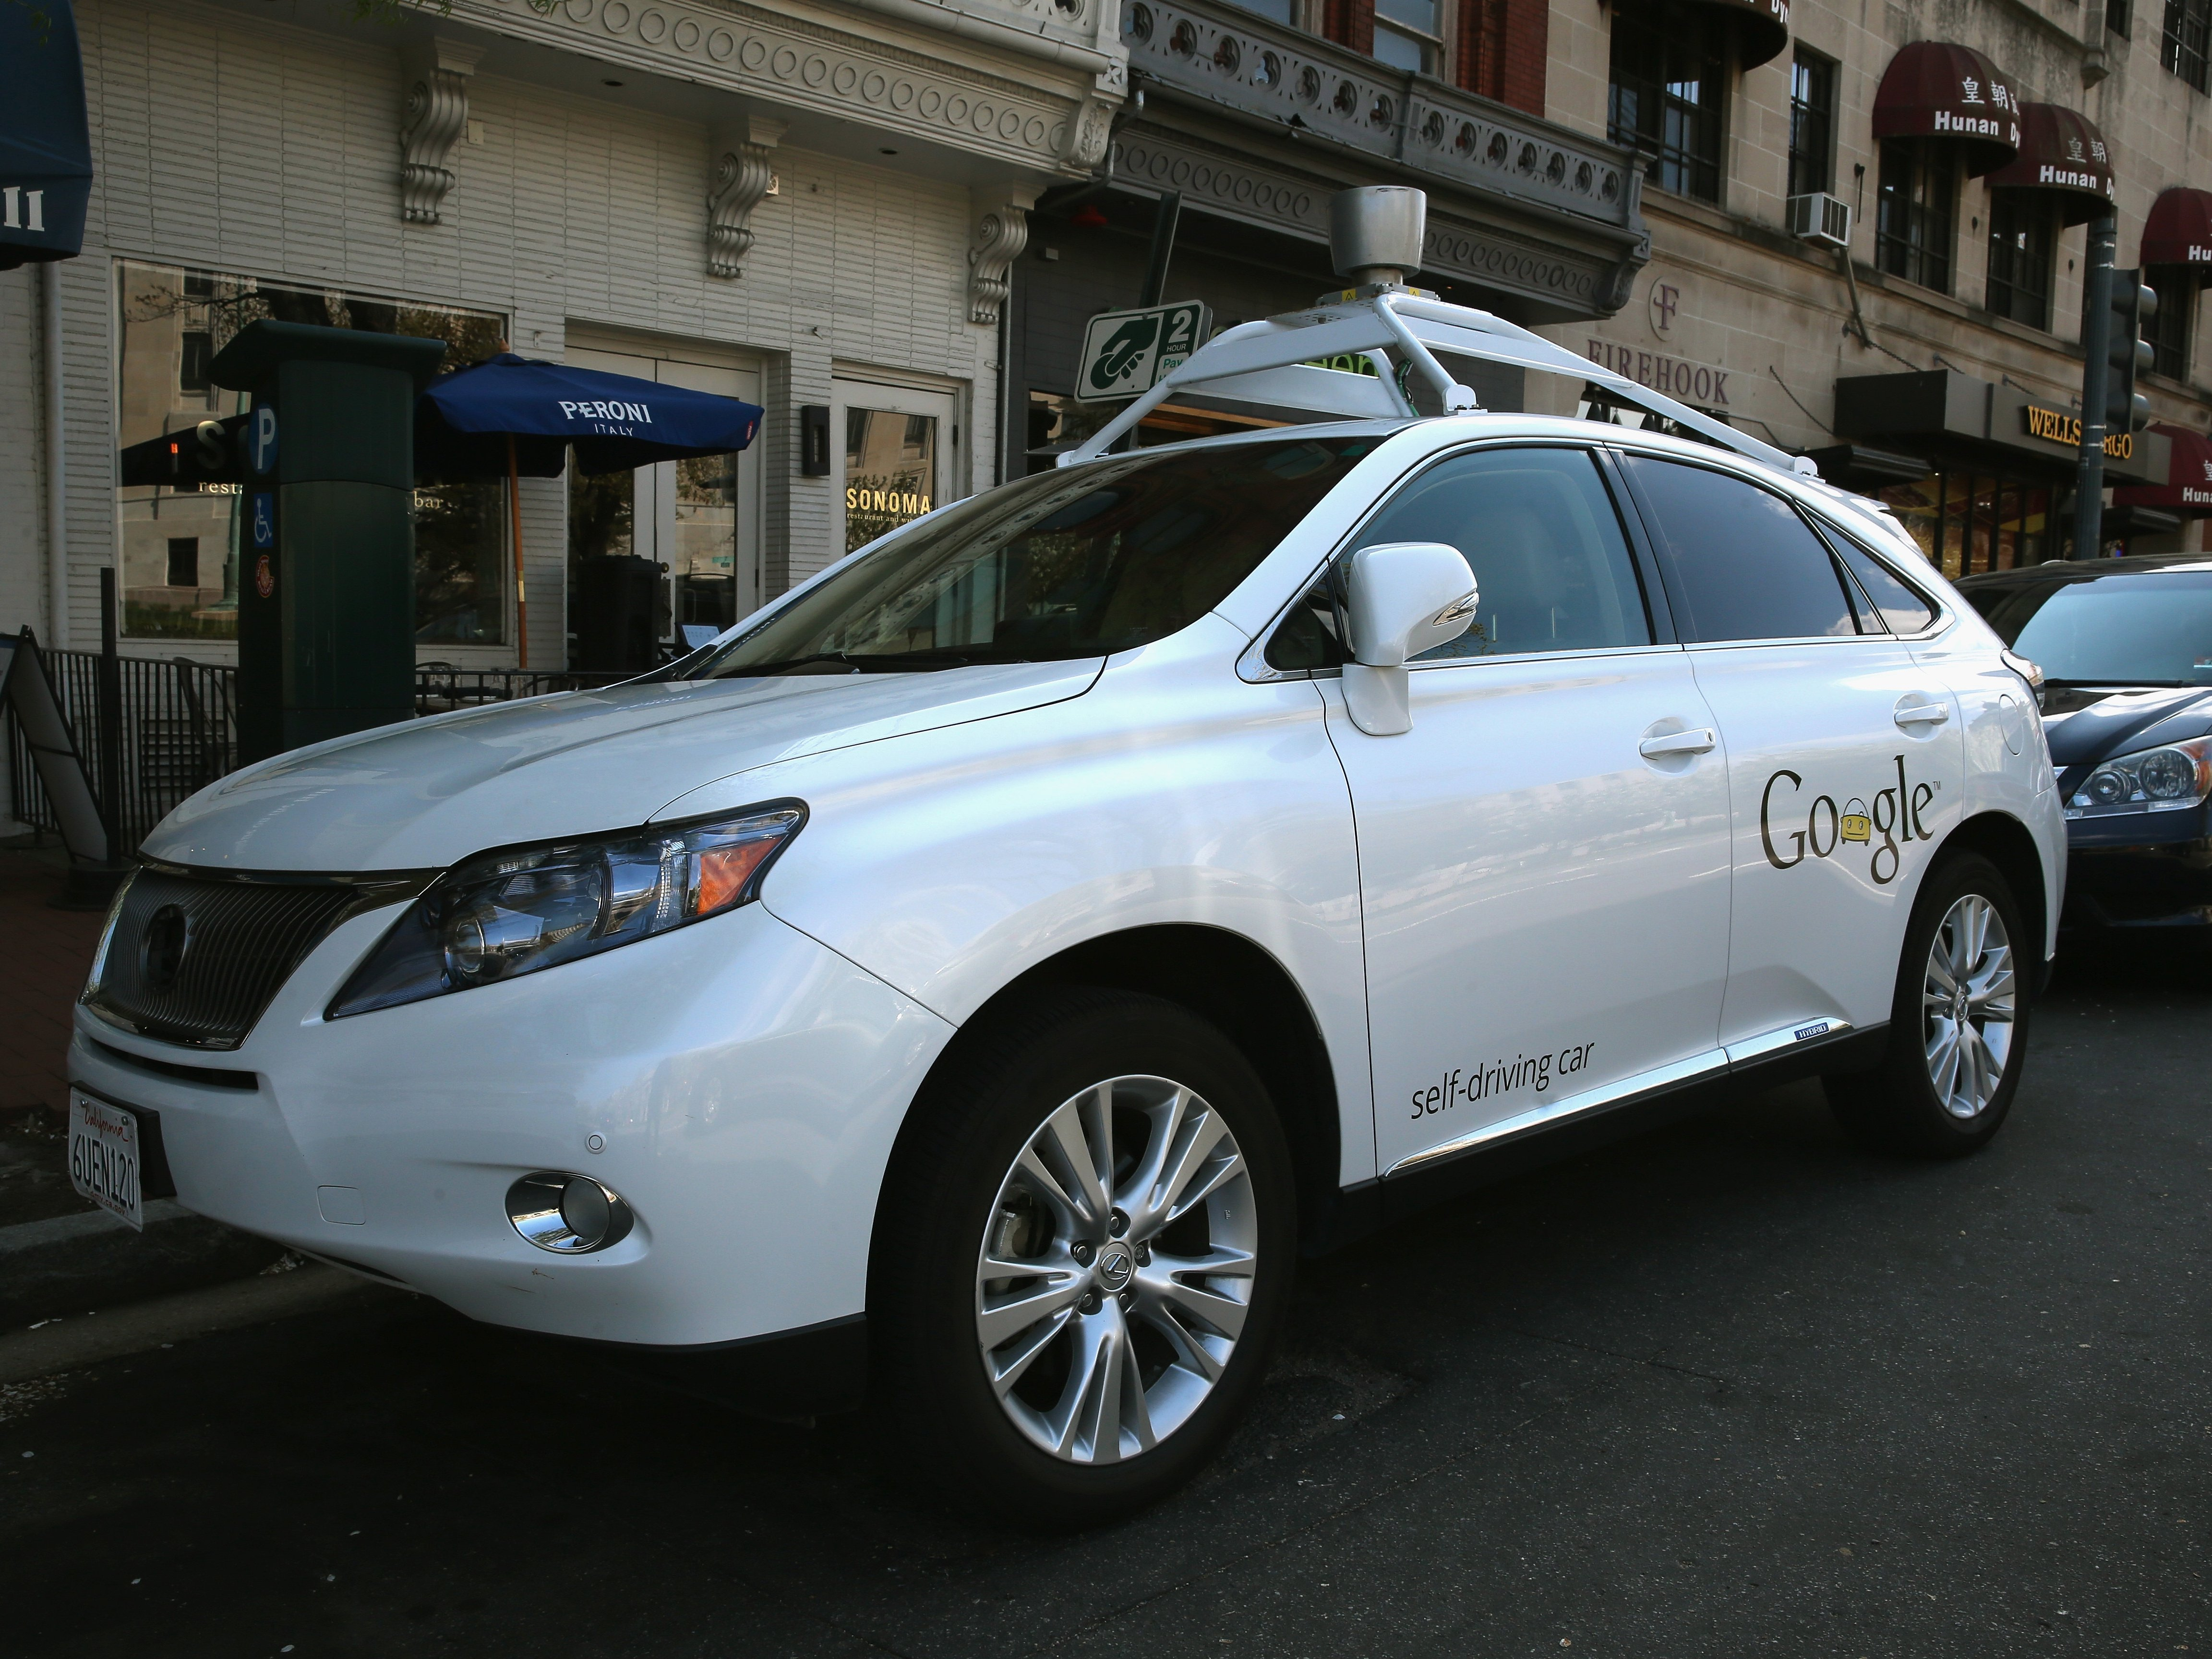 Googles-self-driving-car-got-in-the-first-accident-that-was-truly-its-fault-but-it-was-going-only-2-miles-an-hour